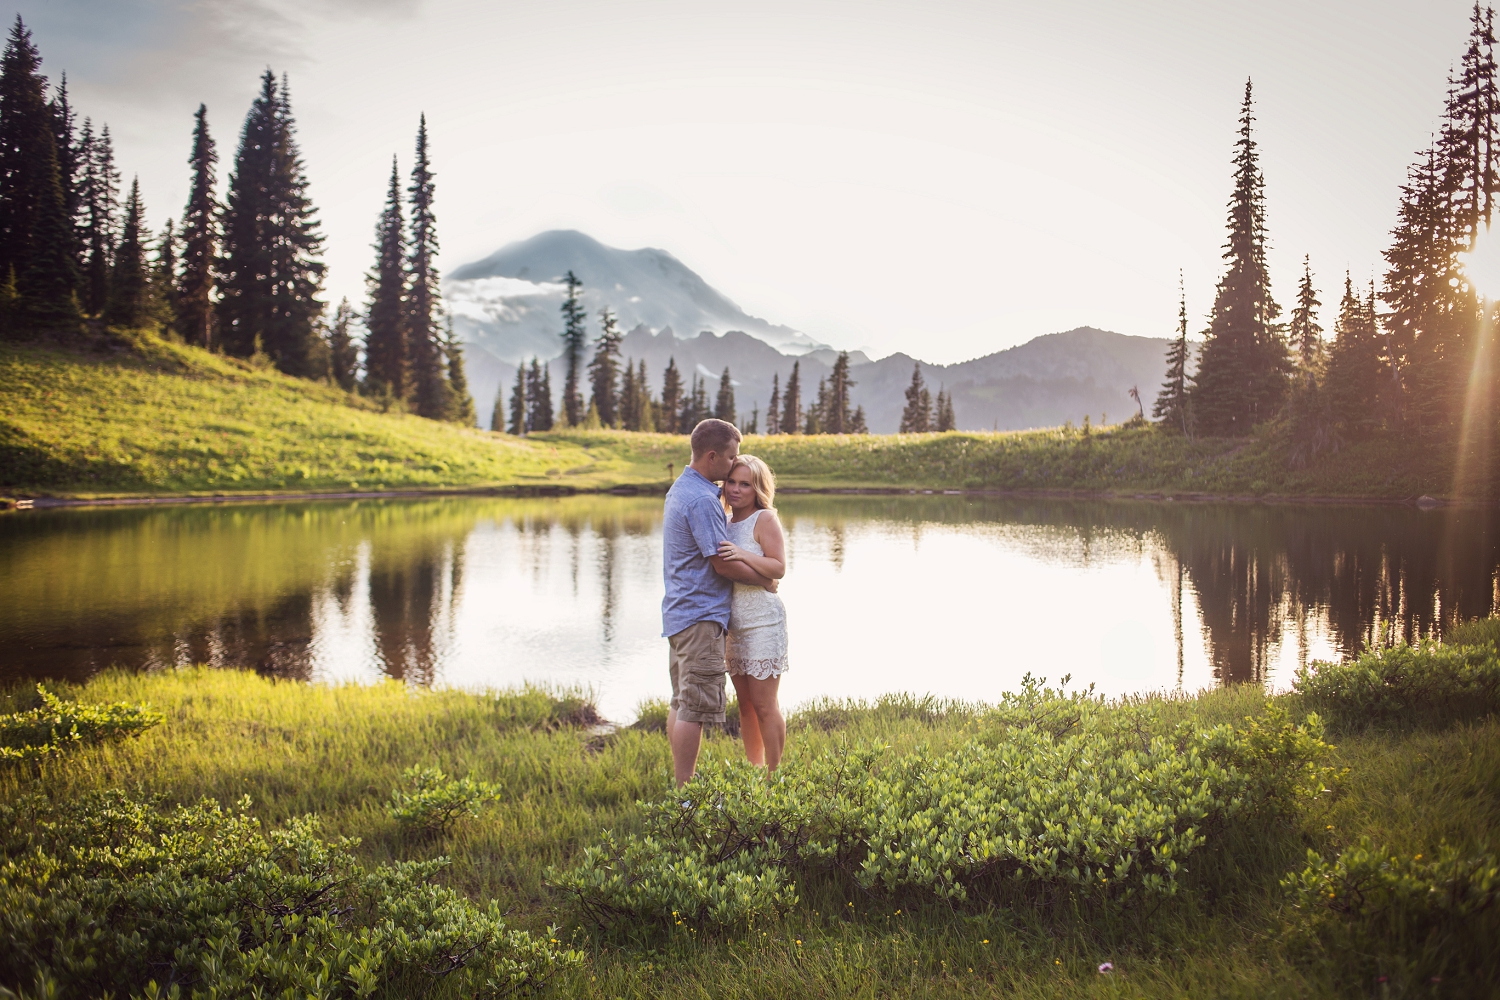 Mt_Rainier_wedding_photographer_2.jpg